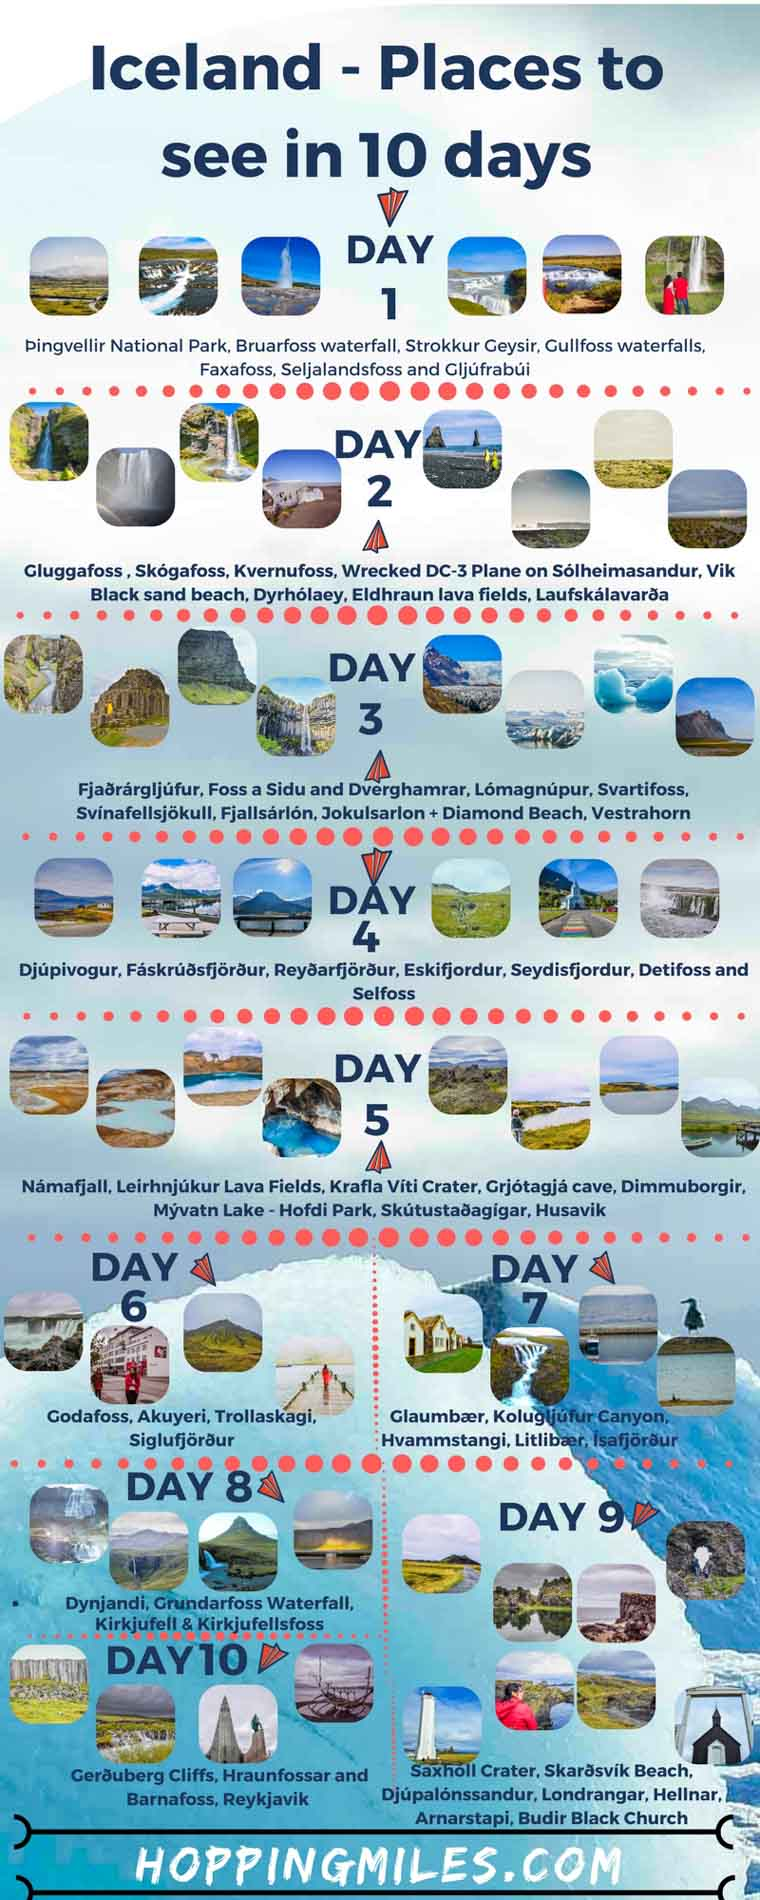 How to plan your 10 day Iceland road trip Itinerary? Choose ... Iceland Ring Road Trip Map on iceland ring road length, iceland black population, golden circle reykjavik map, reykjavik tourist map, iceland points of interest maps, iceland ring road bridge, pacific coast highway 1 california map, iceland daylight chart, iceland tours, iceland itinerary, iceland road trip, iceland scenery, greenland road map, iceland stocks, west iceland road map, confederate states of america map, iceland scenic views, iceland f roads, iceland tourism, western canada map,